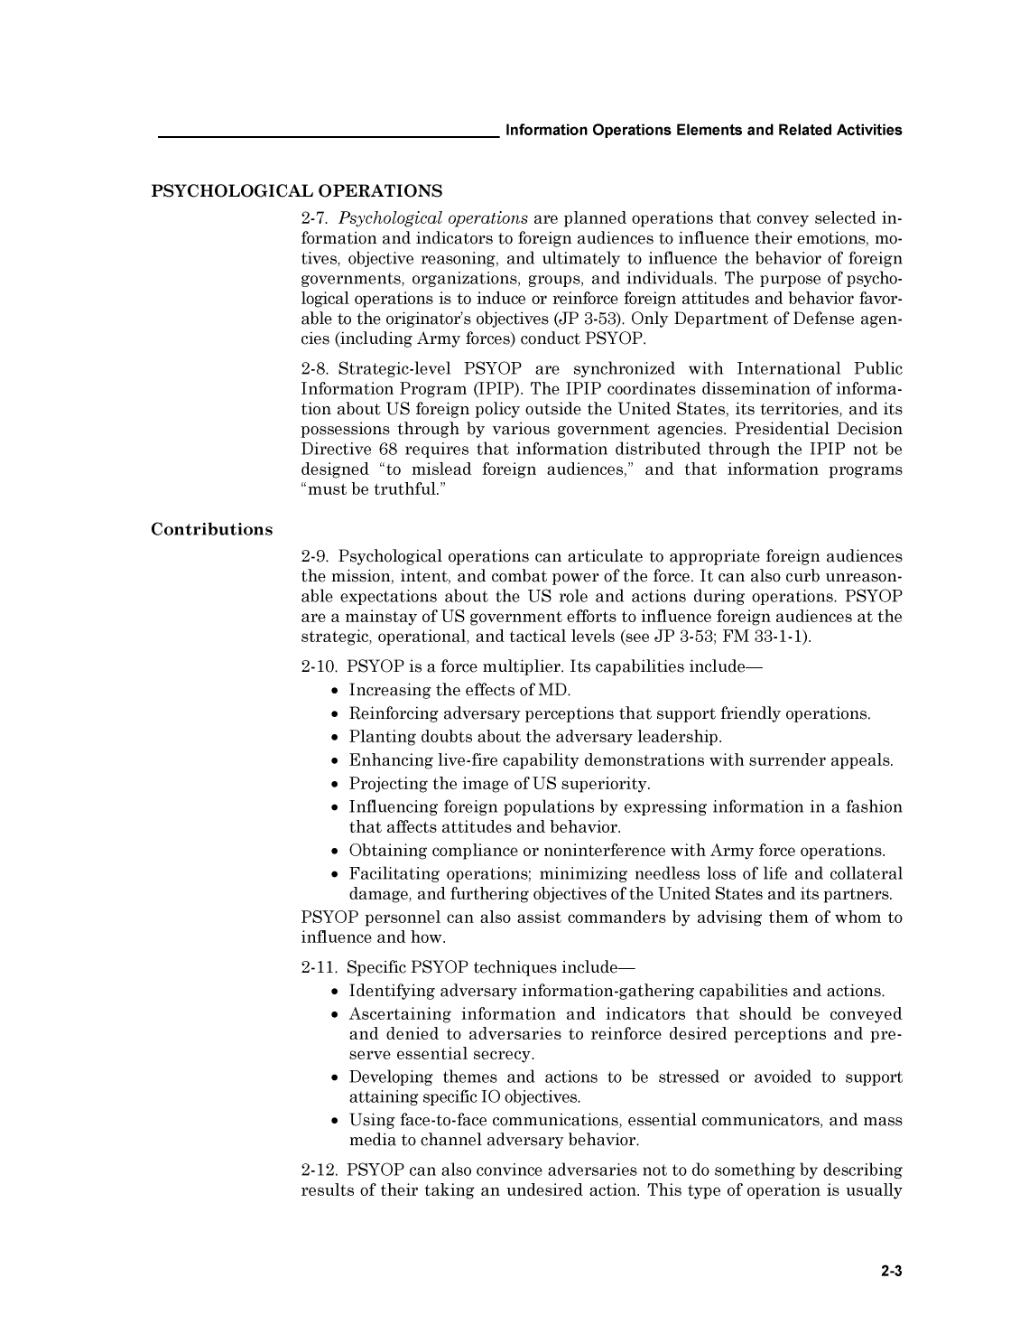 page united states army field manual 3 13 information operations rh en wikisource org Army Field Manual 3 24 U.S. Army Field Manual 21 20